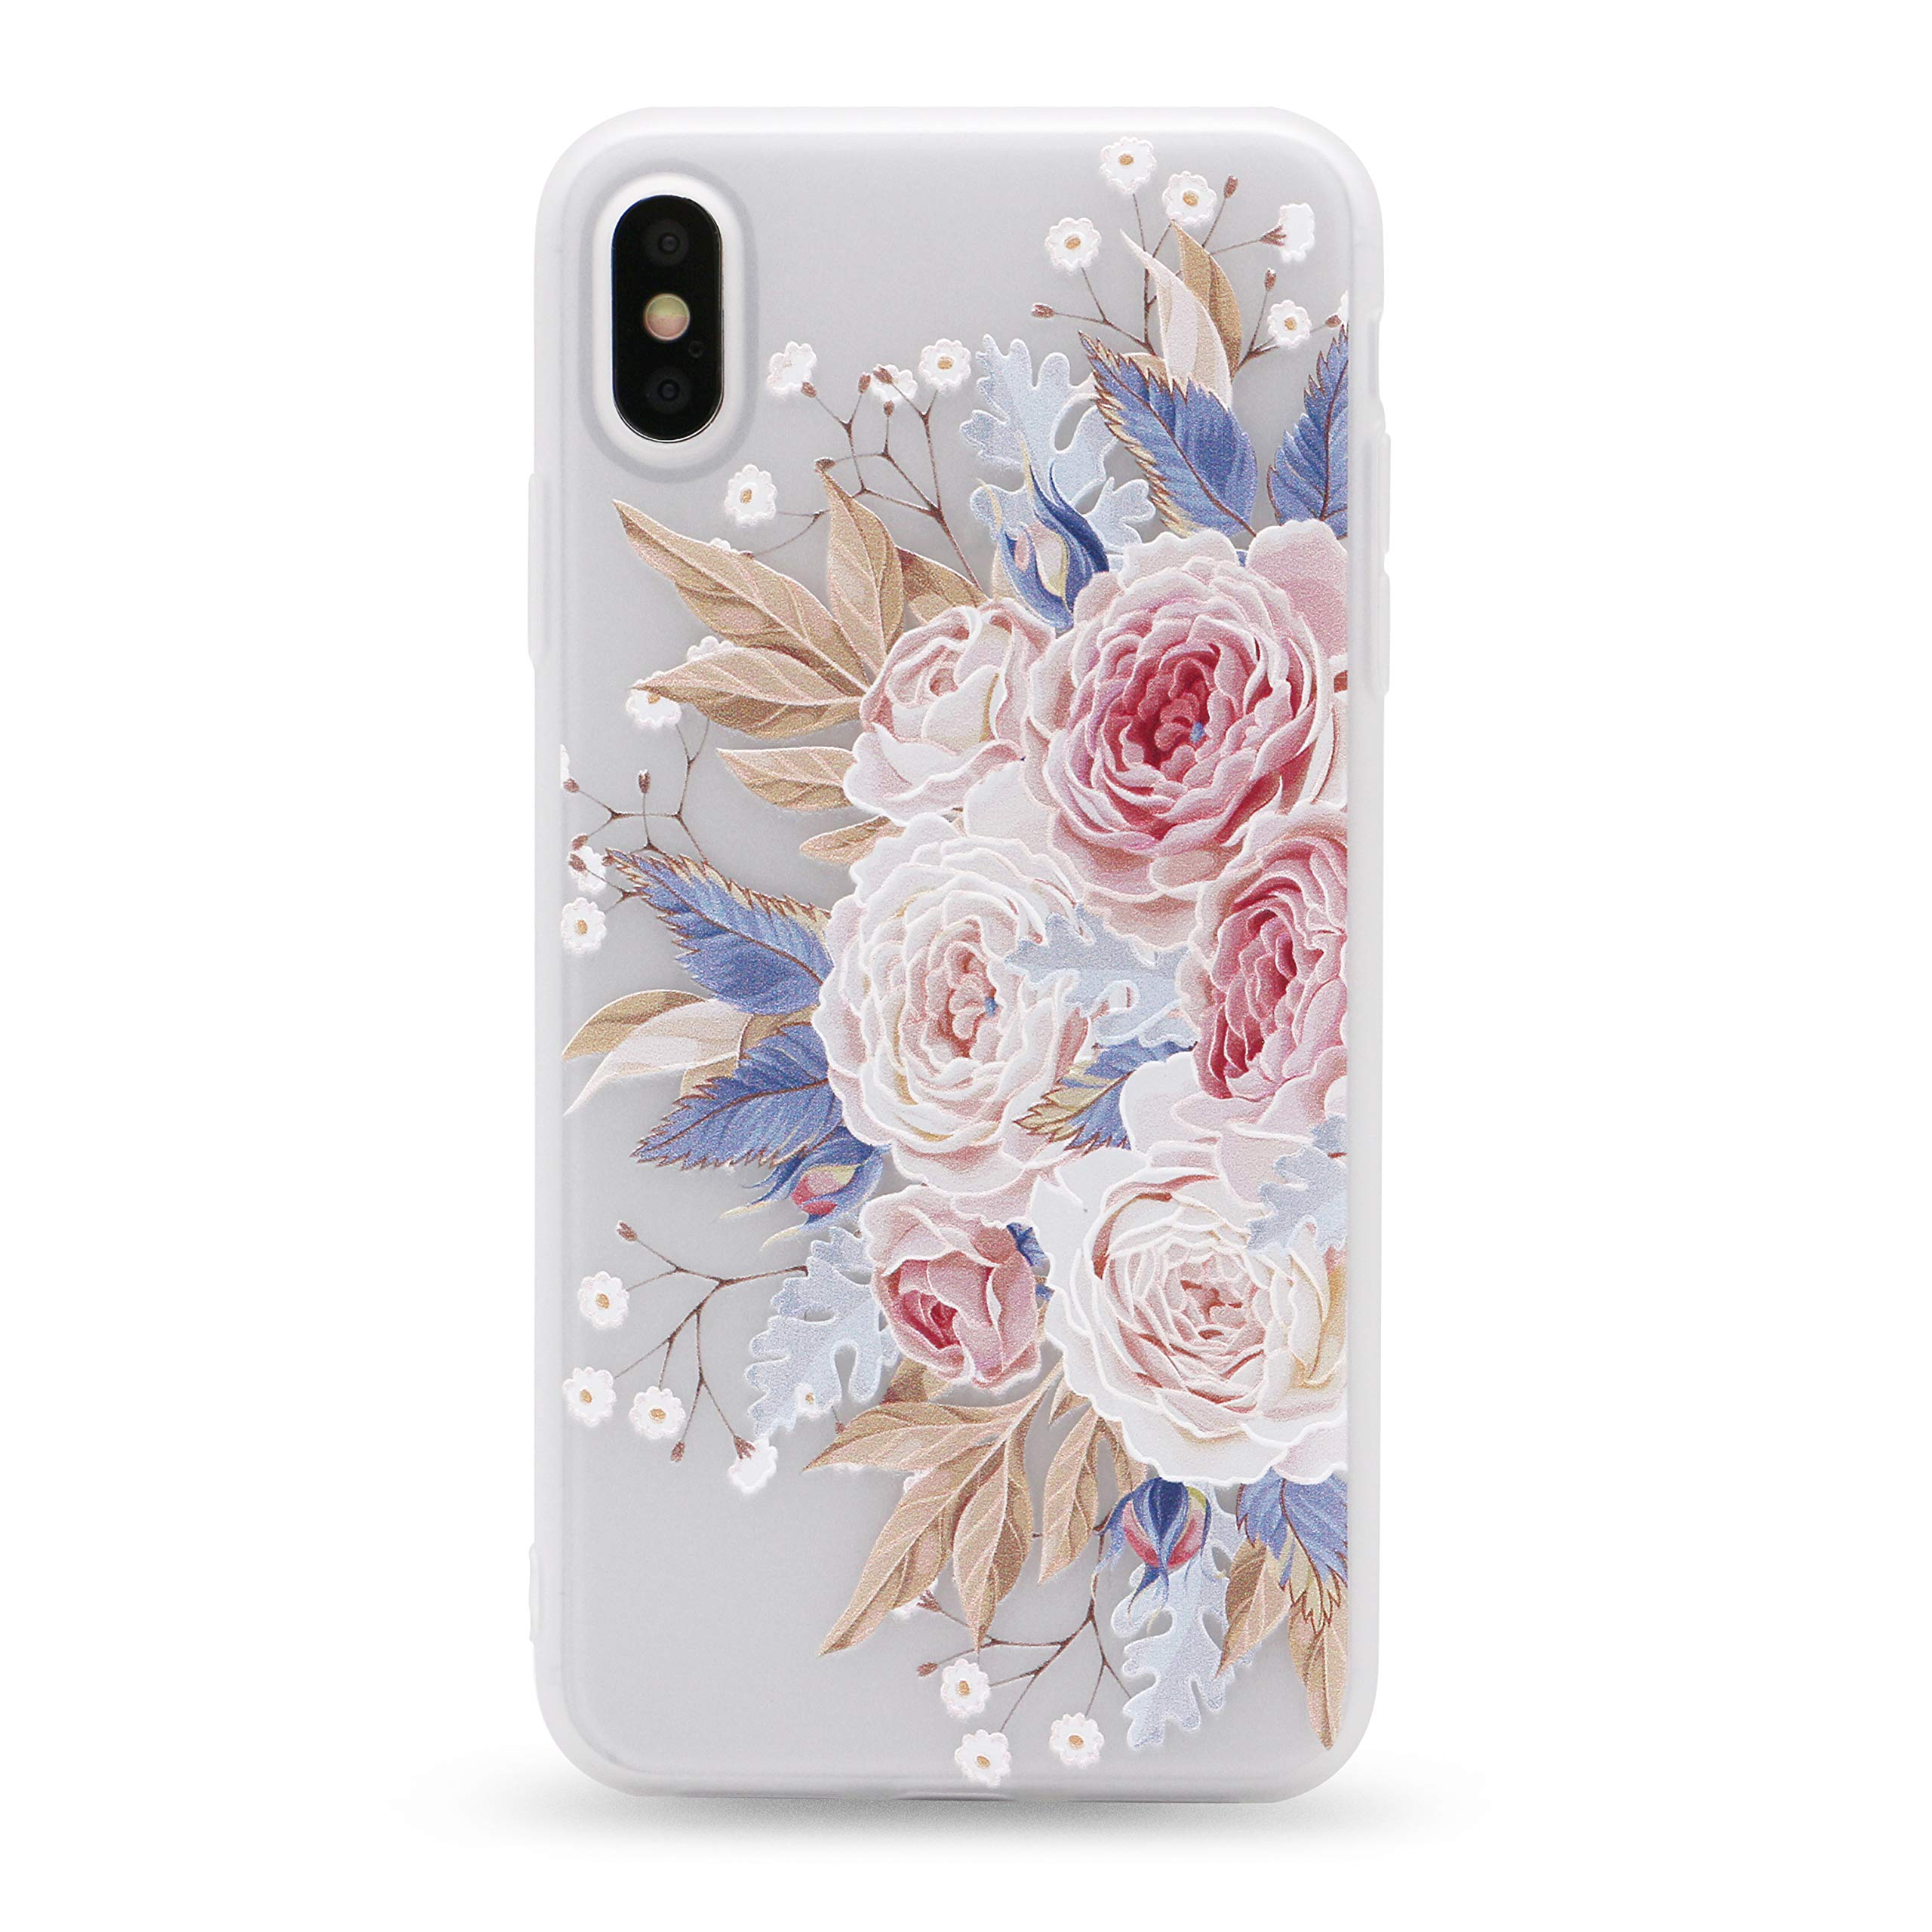 IMIFUN 3D Relief Flower Silicon Phone Case for iPhone Xs Max XR XS Rose Floral iPhone Cases Soft TPU Cover (7232, XSMAX) by IMIFUN